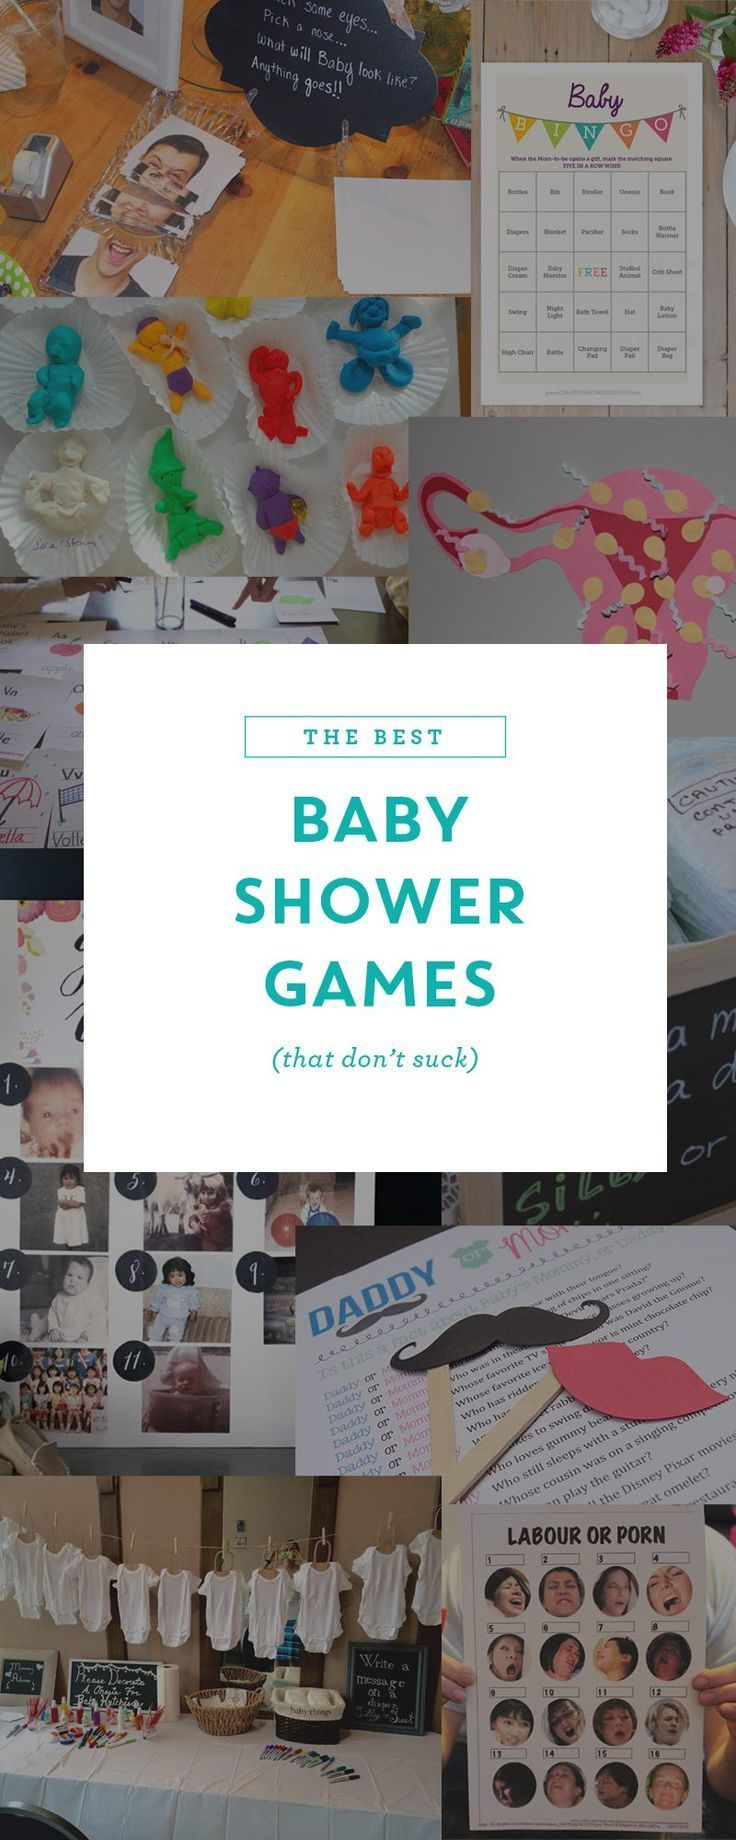 Here are some unique and hilarious baby shower games that are fun for everyone – including options for co-ed and large groups. Free printables too!